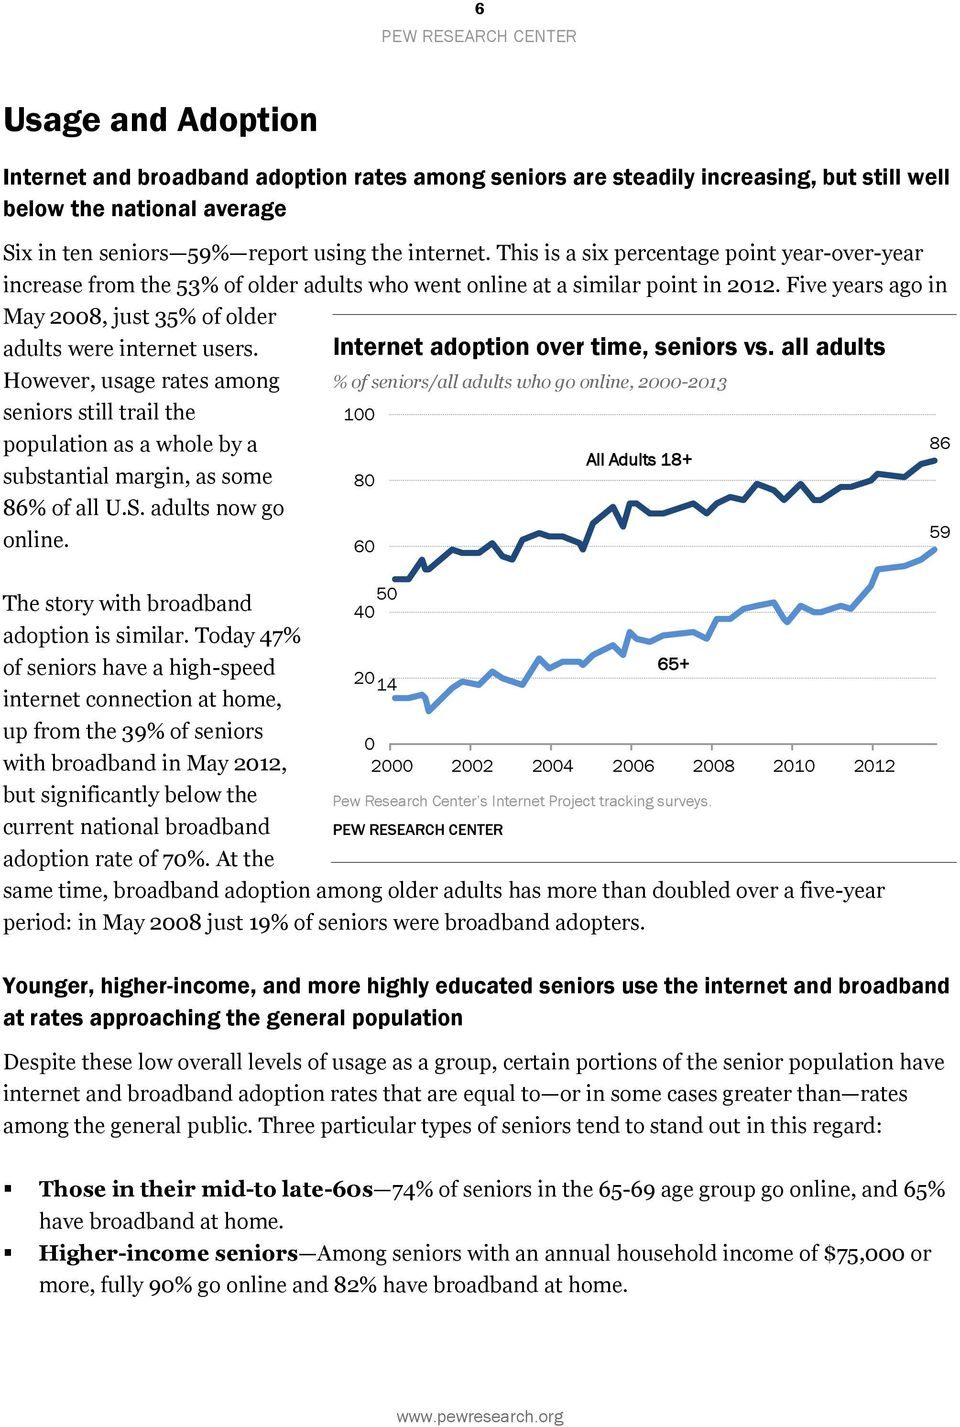 Five years ago in May 2008, just 35% of older adults were internet users. However, usage rates among seniors still trail the population as a whole by a substantial margin, as some 86% of all U.S.